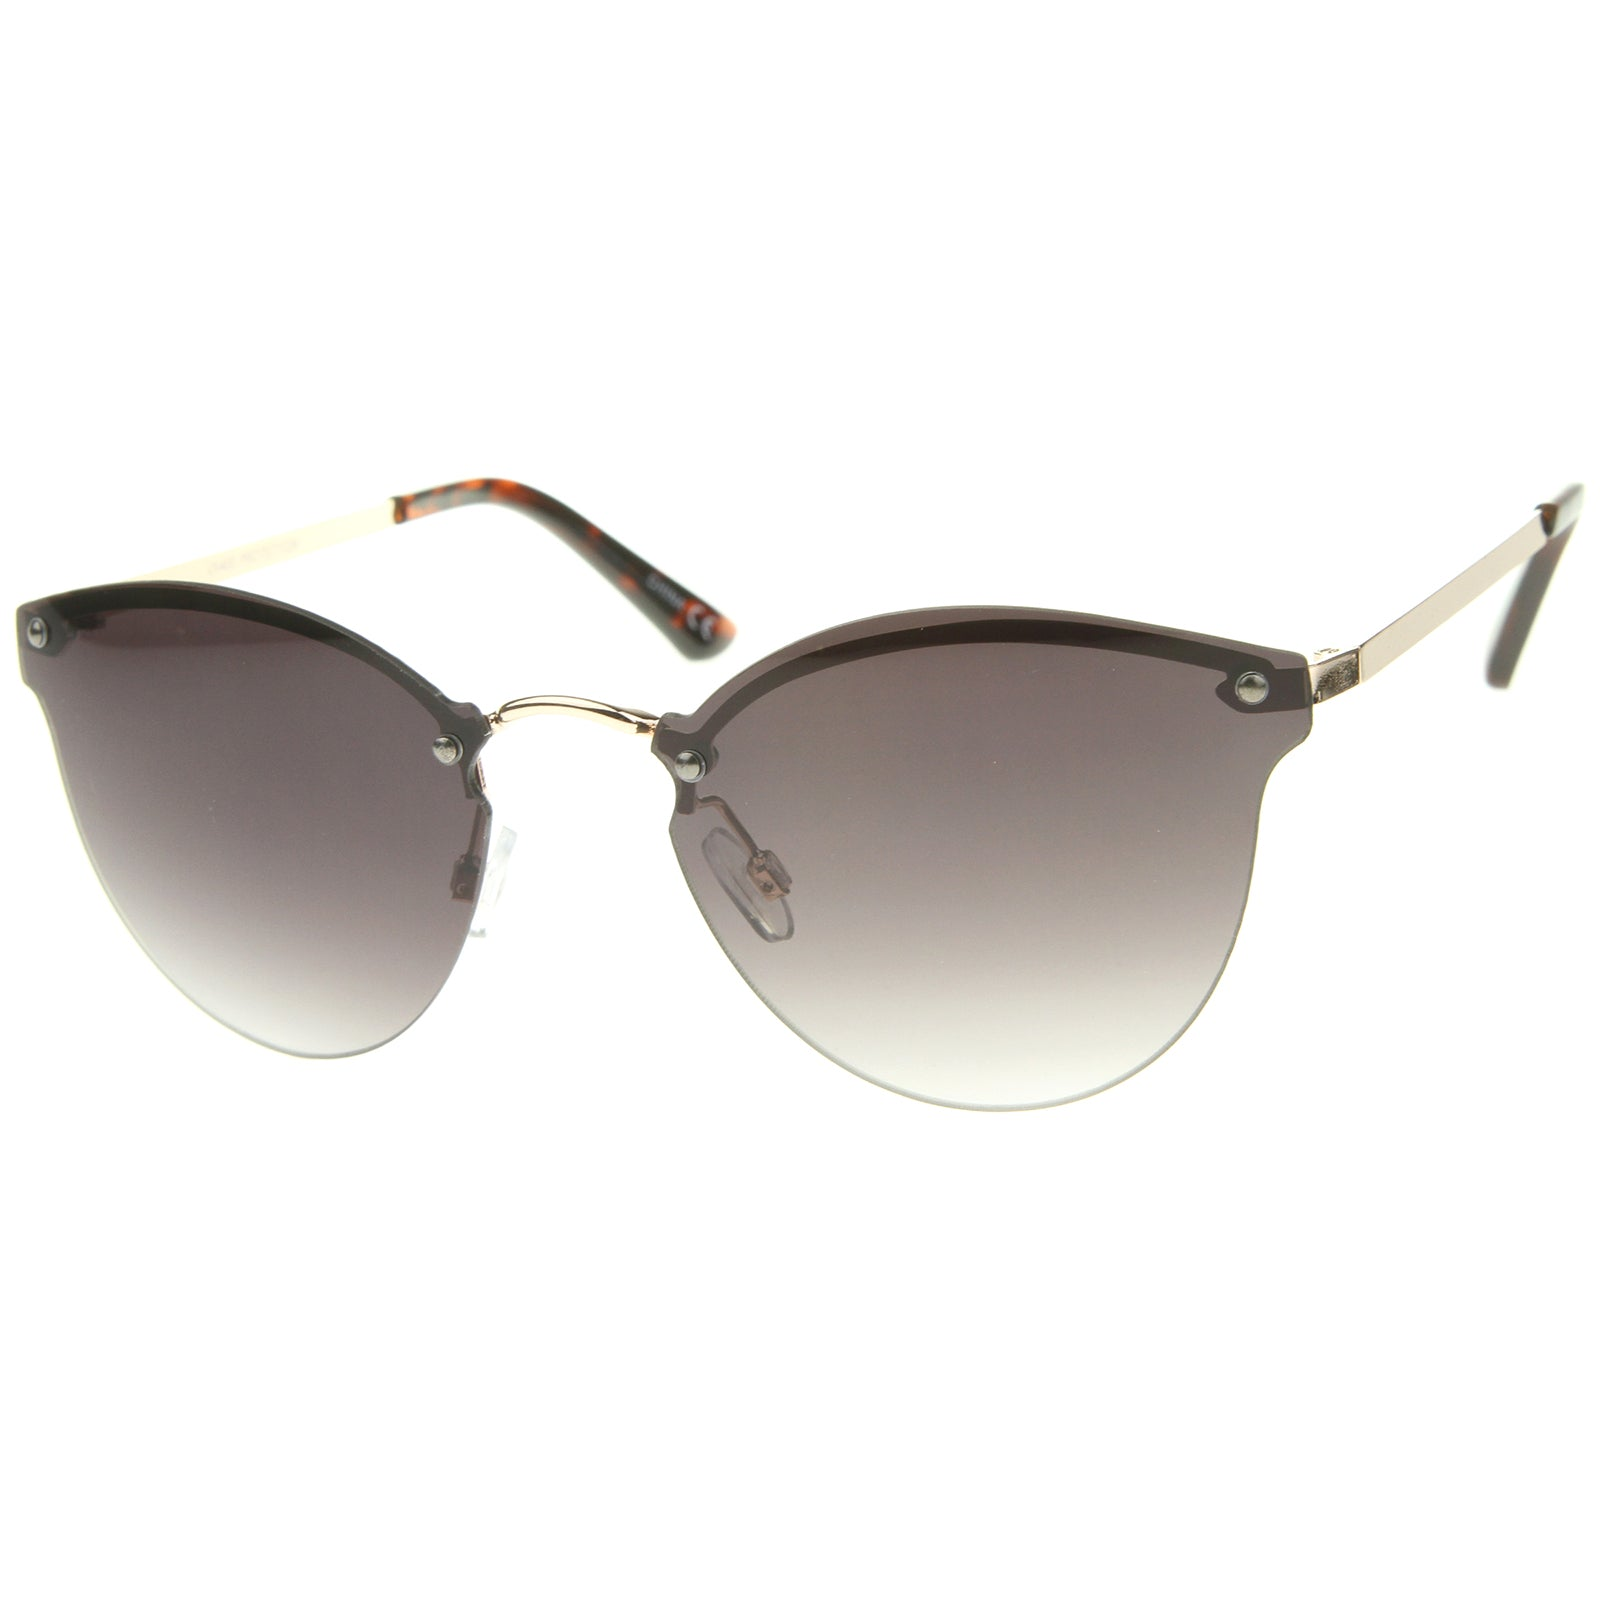 Womens Fashion Lightweight Rimless Metal Temple Cat Eye Sunglasses - sunglass.la - 10